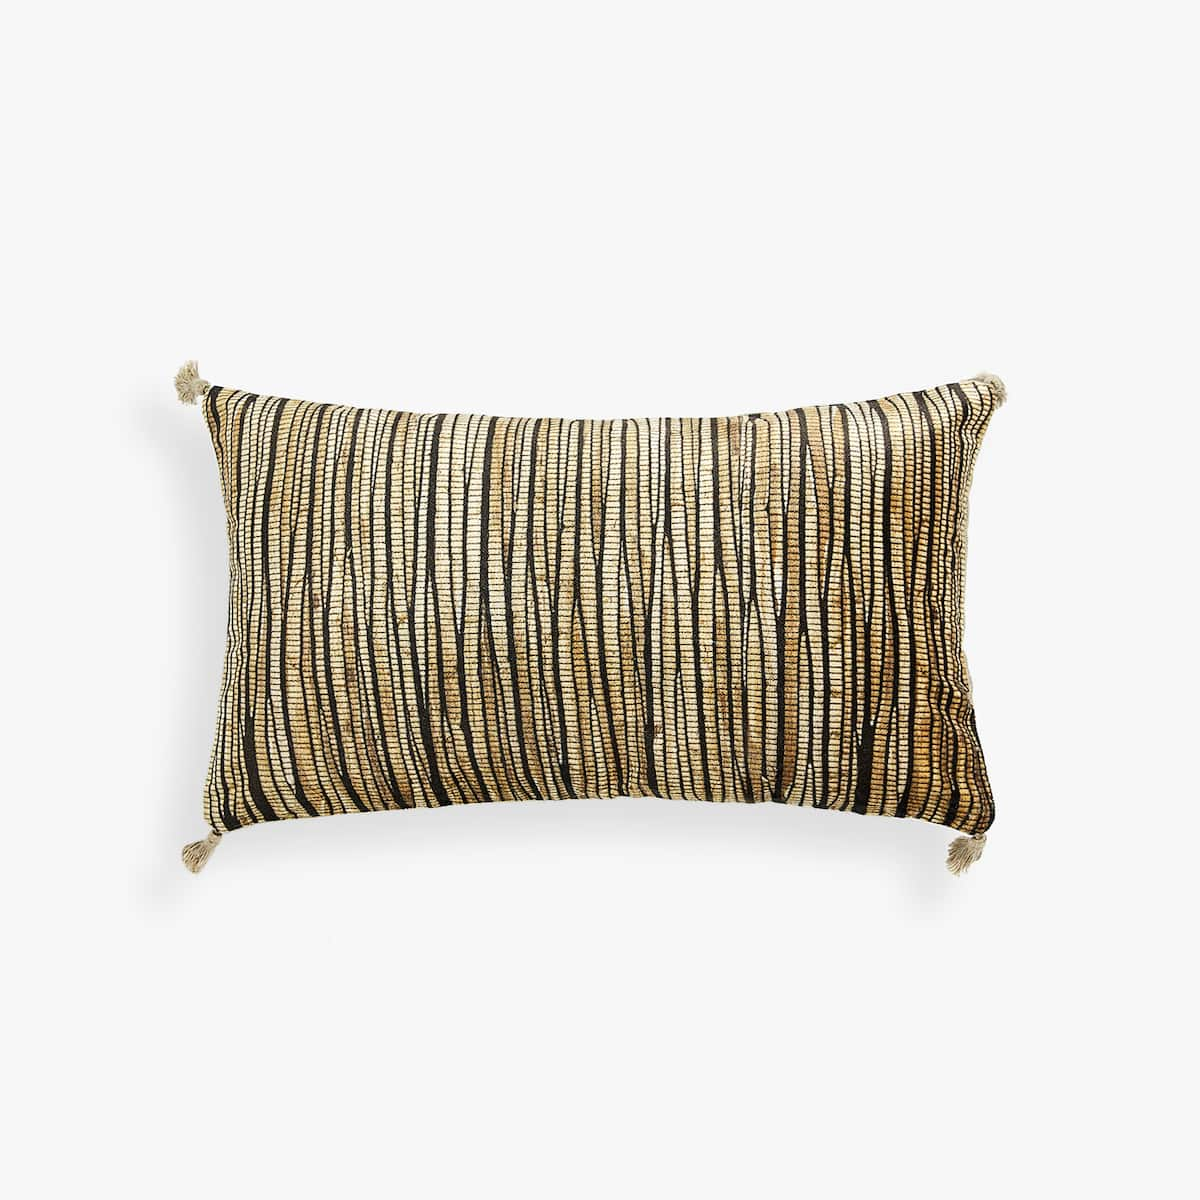 Focus Sur La Deco Animal Print De Zara Home Artsdeco Org